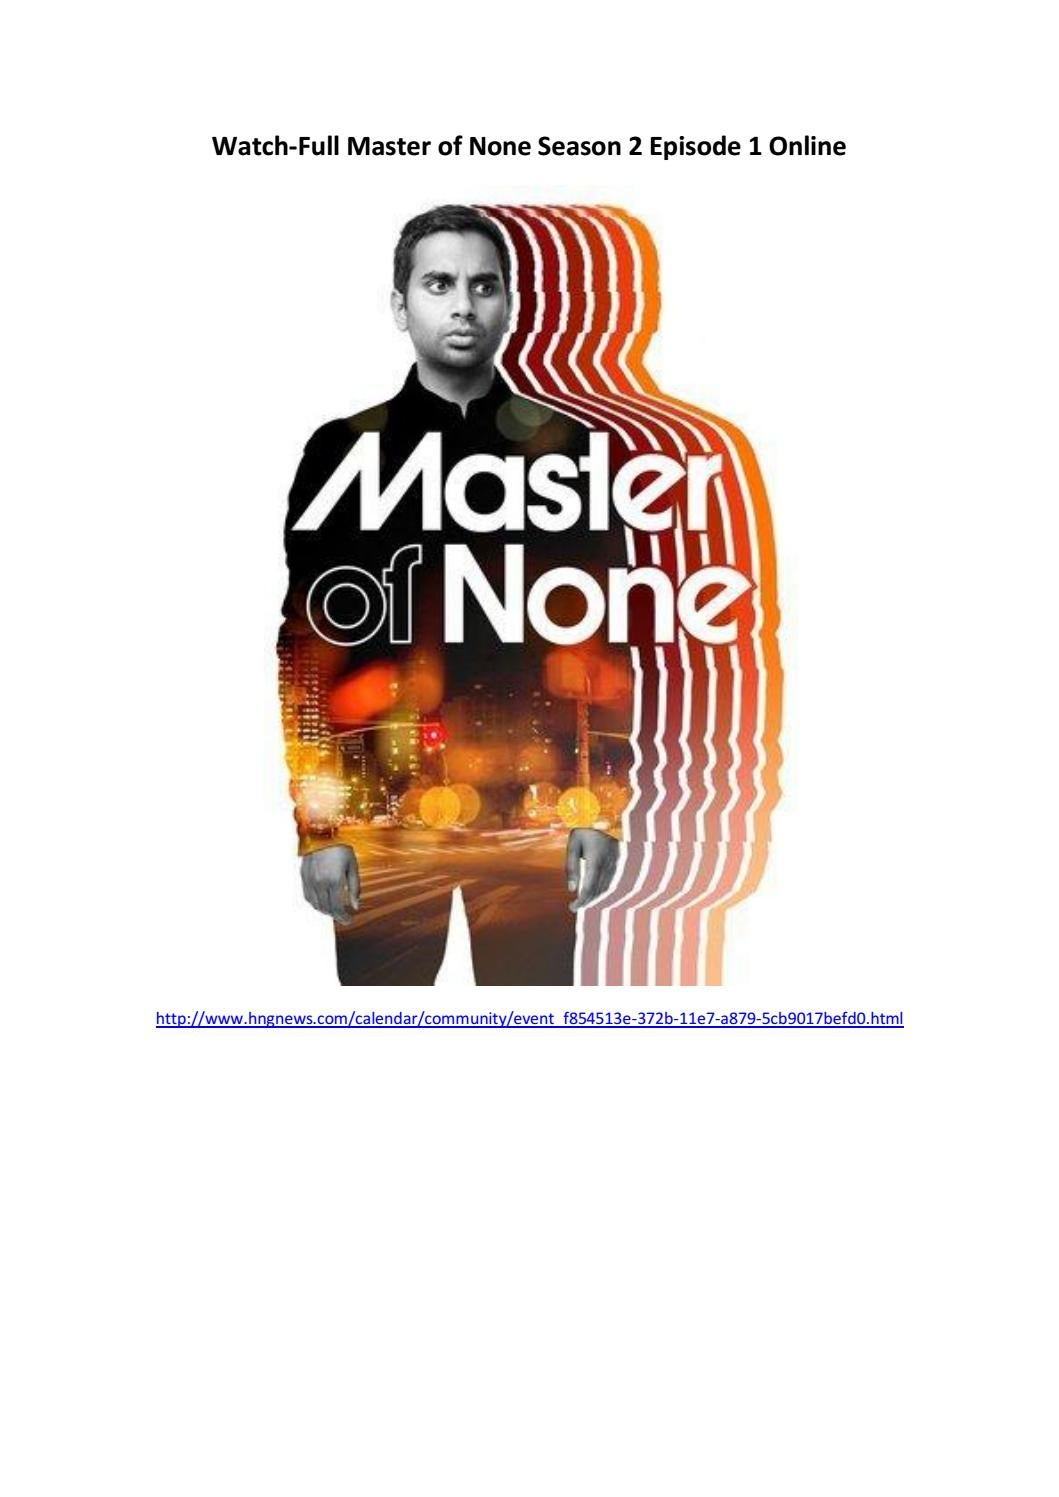 Watch full master of none season 2 episode 1 online by